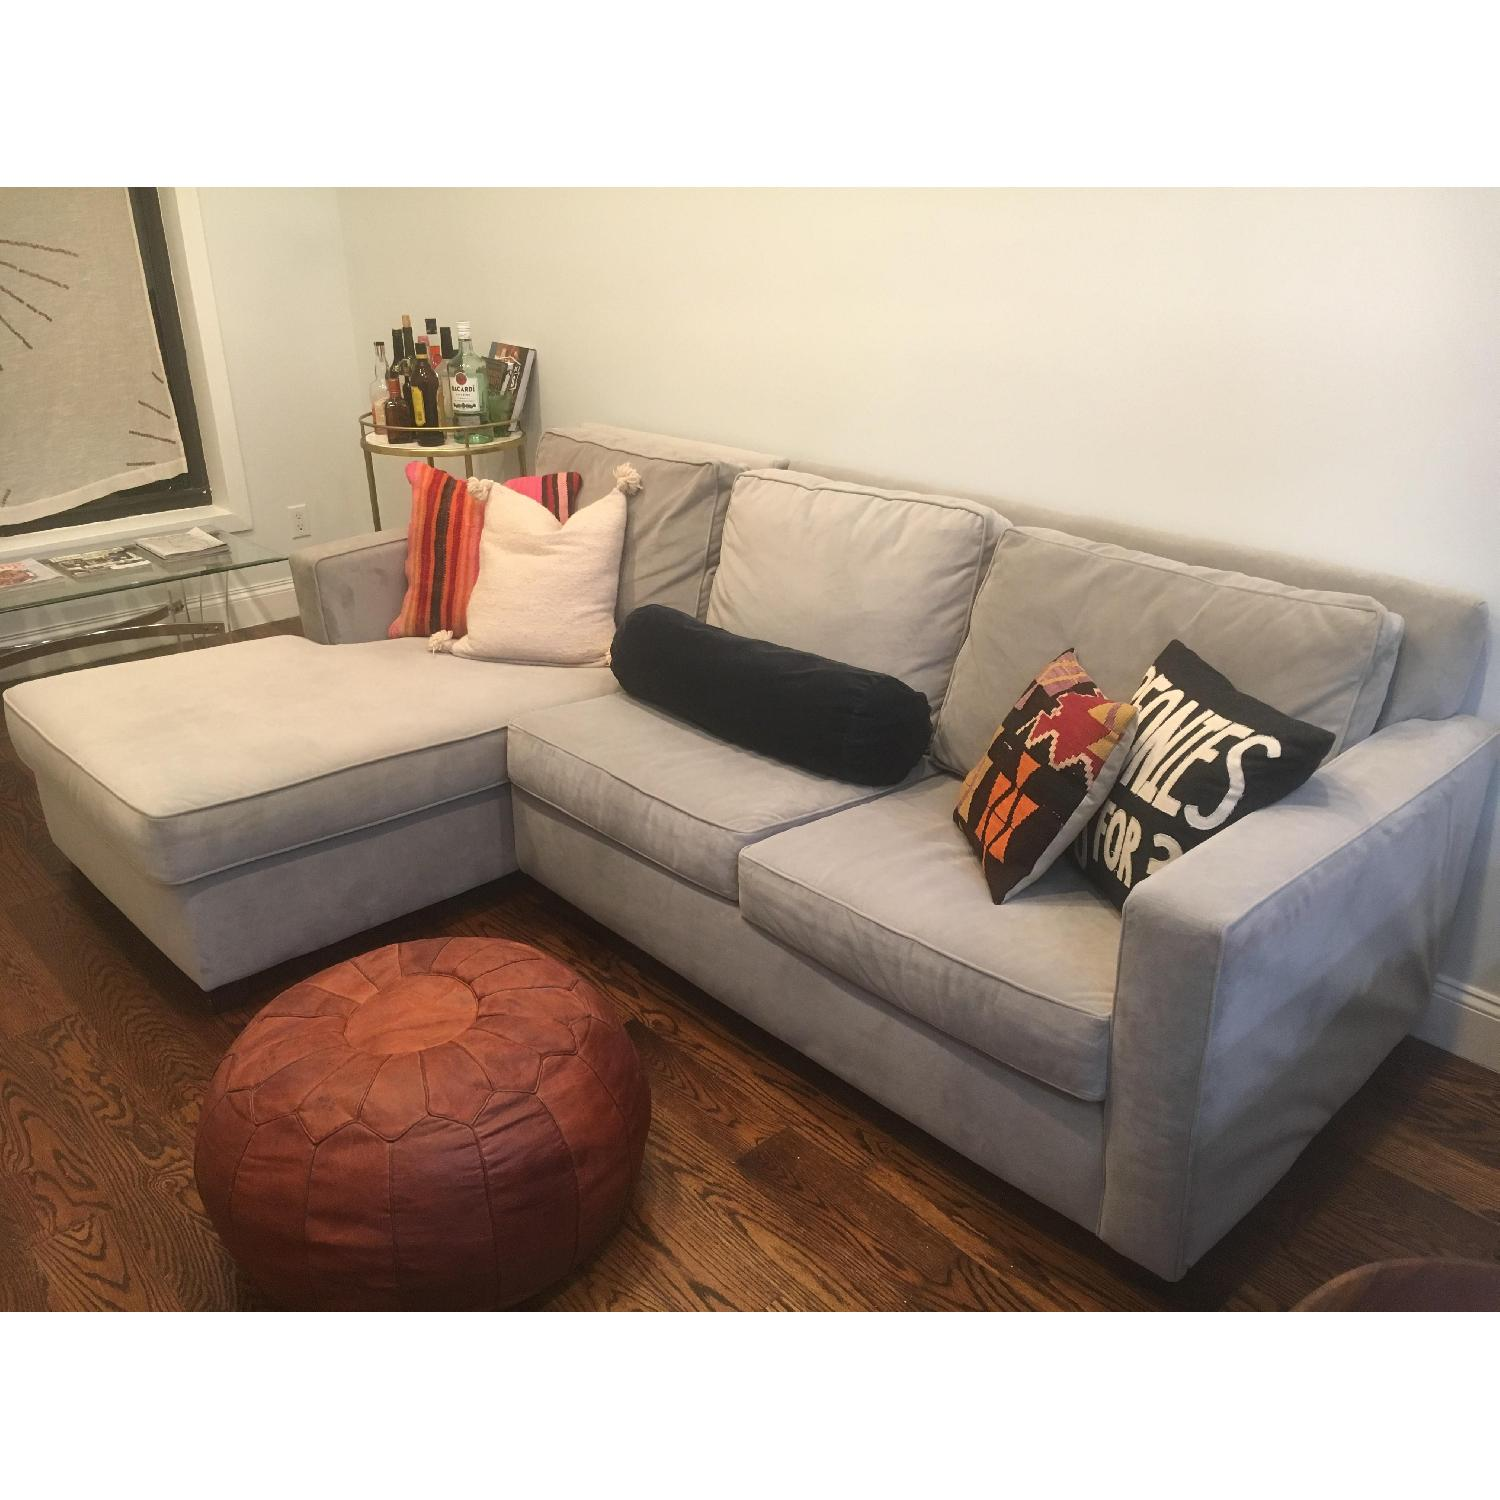 ... West Elm Henry 2 Piece Chaise Sectional Sofa-0 ...  sc 1 st  AptDeco : 2 piece chaise sectional - Sectionals, Sofas & Couches